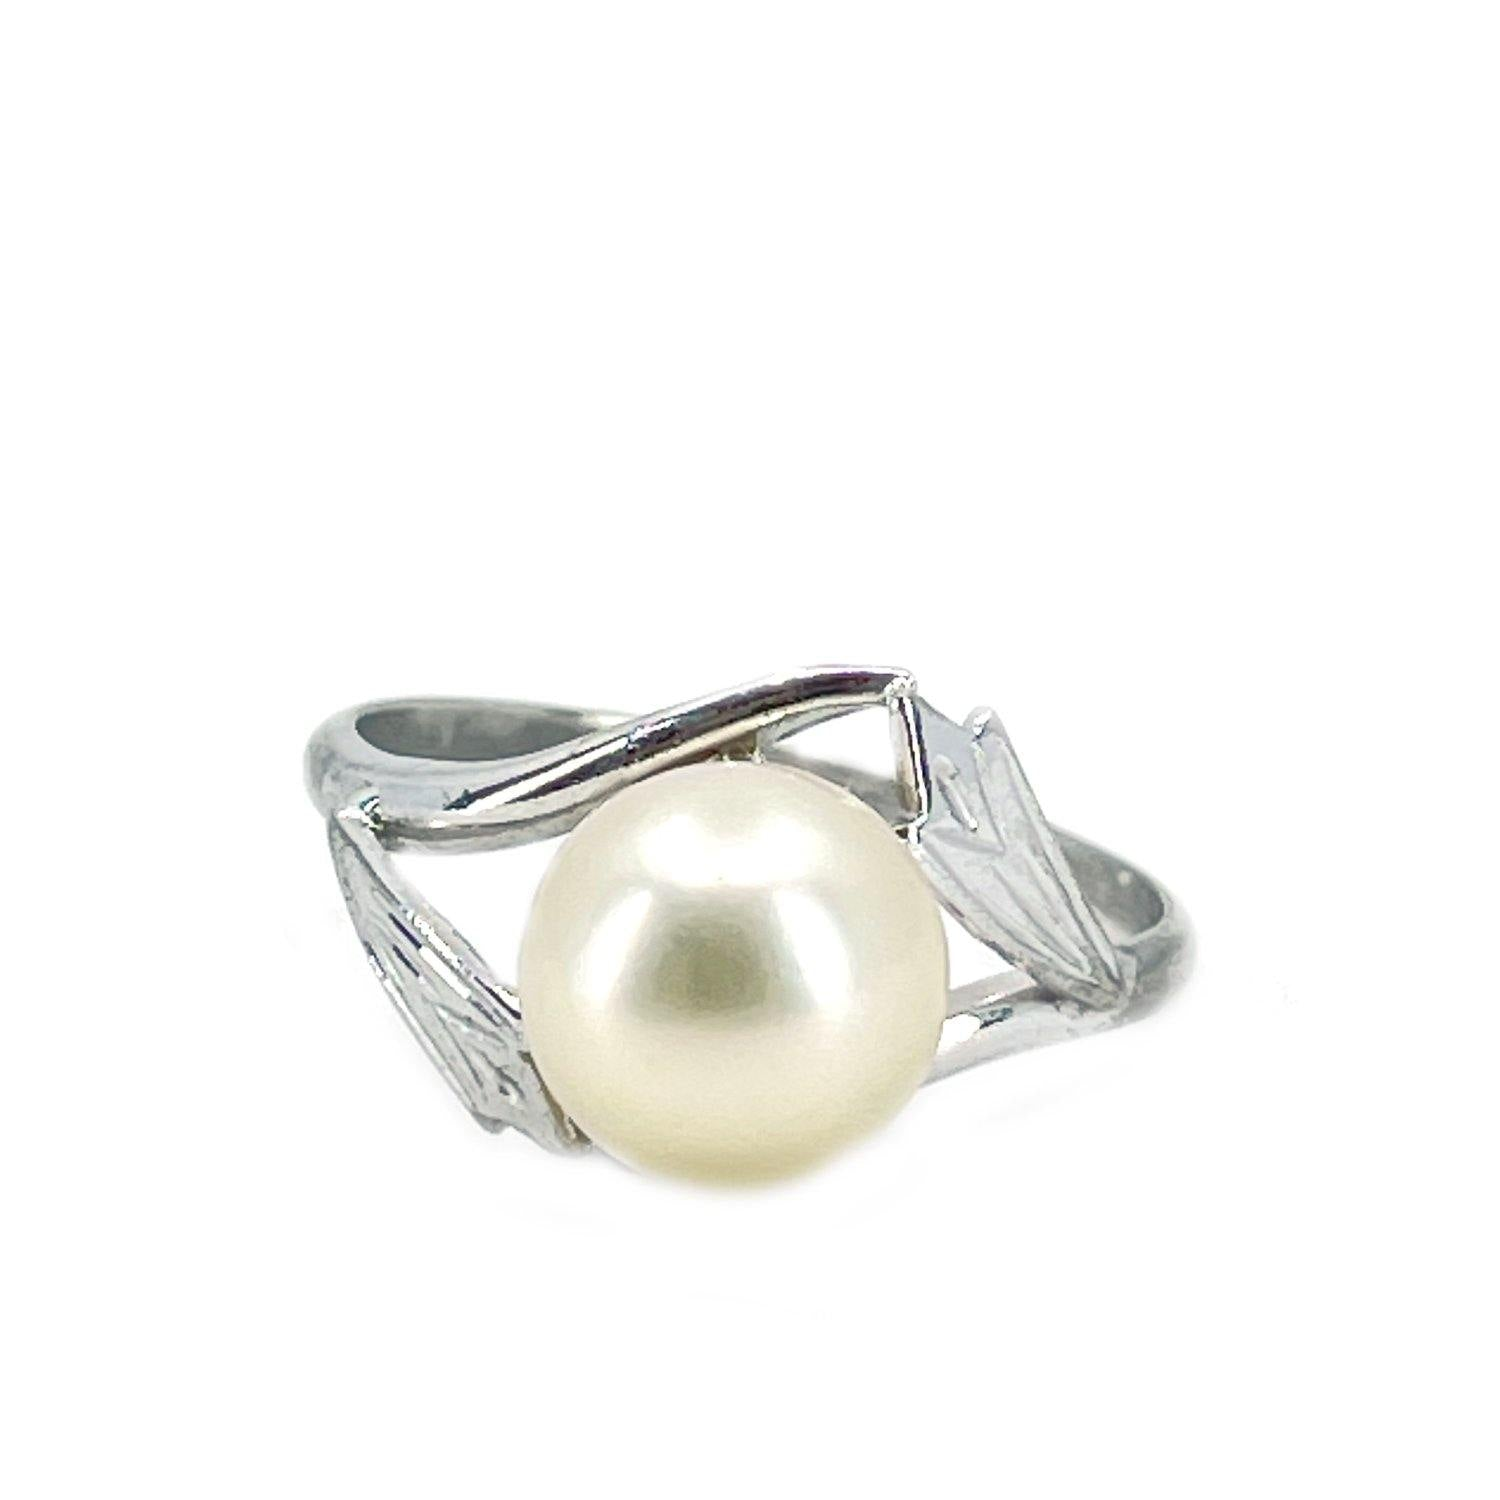 Botanical Double Leaf Japanese Saltwater Blue Akoya Cultured Pearl Ring- Sterling Silver Sz 6